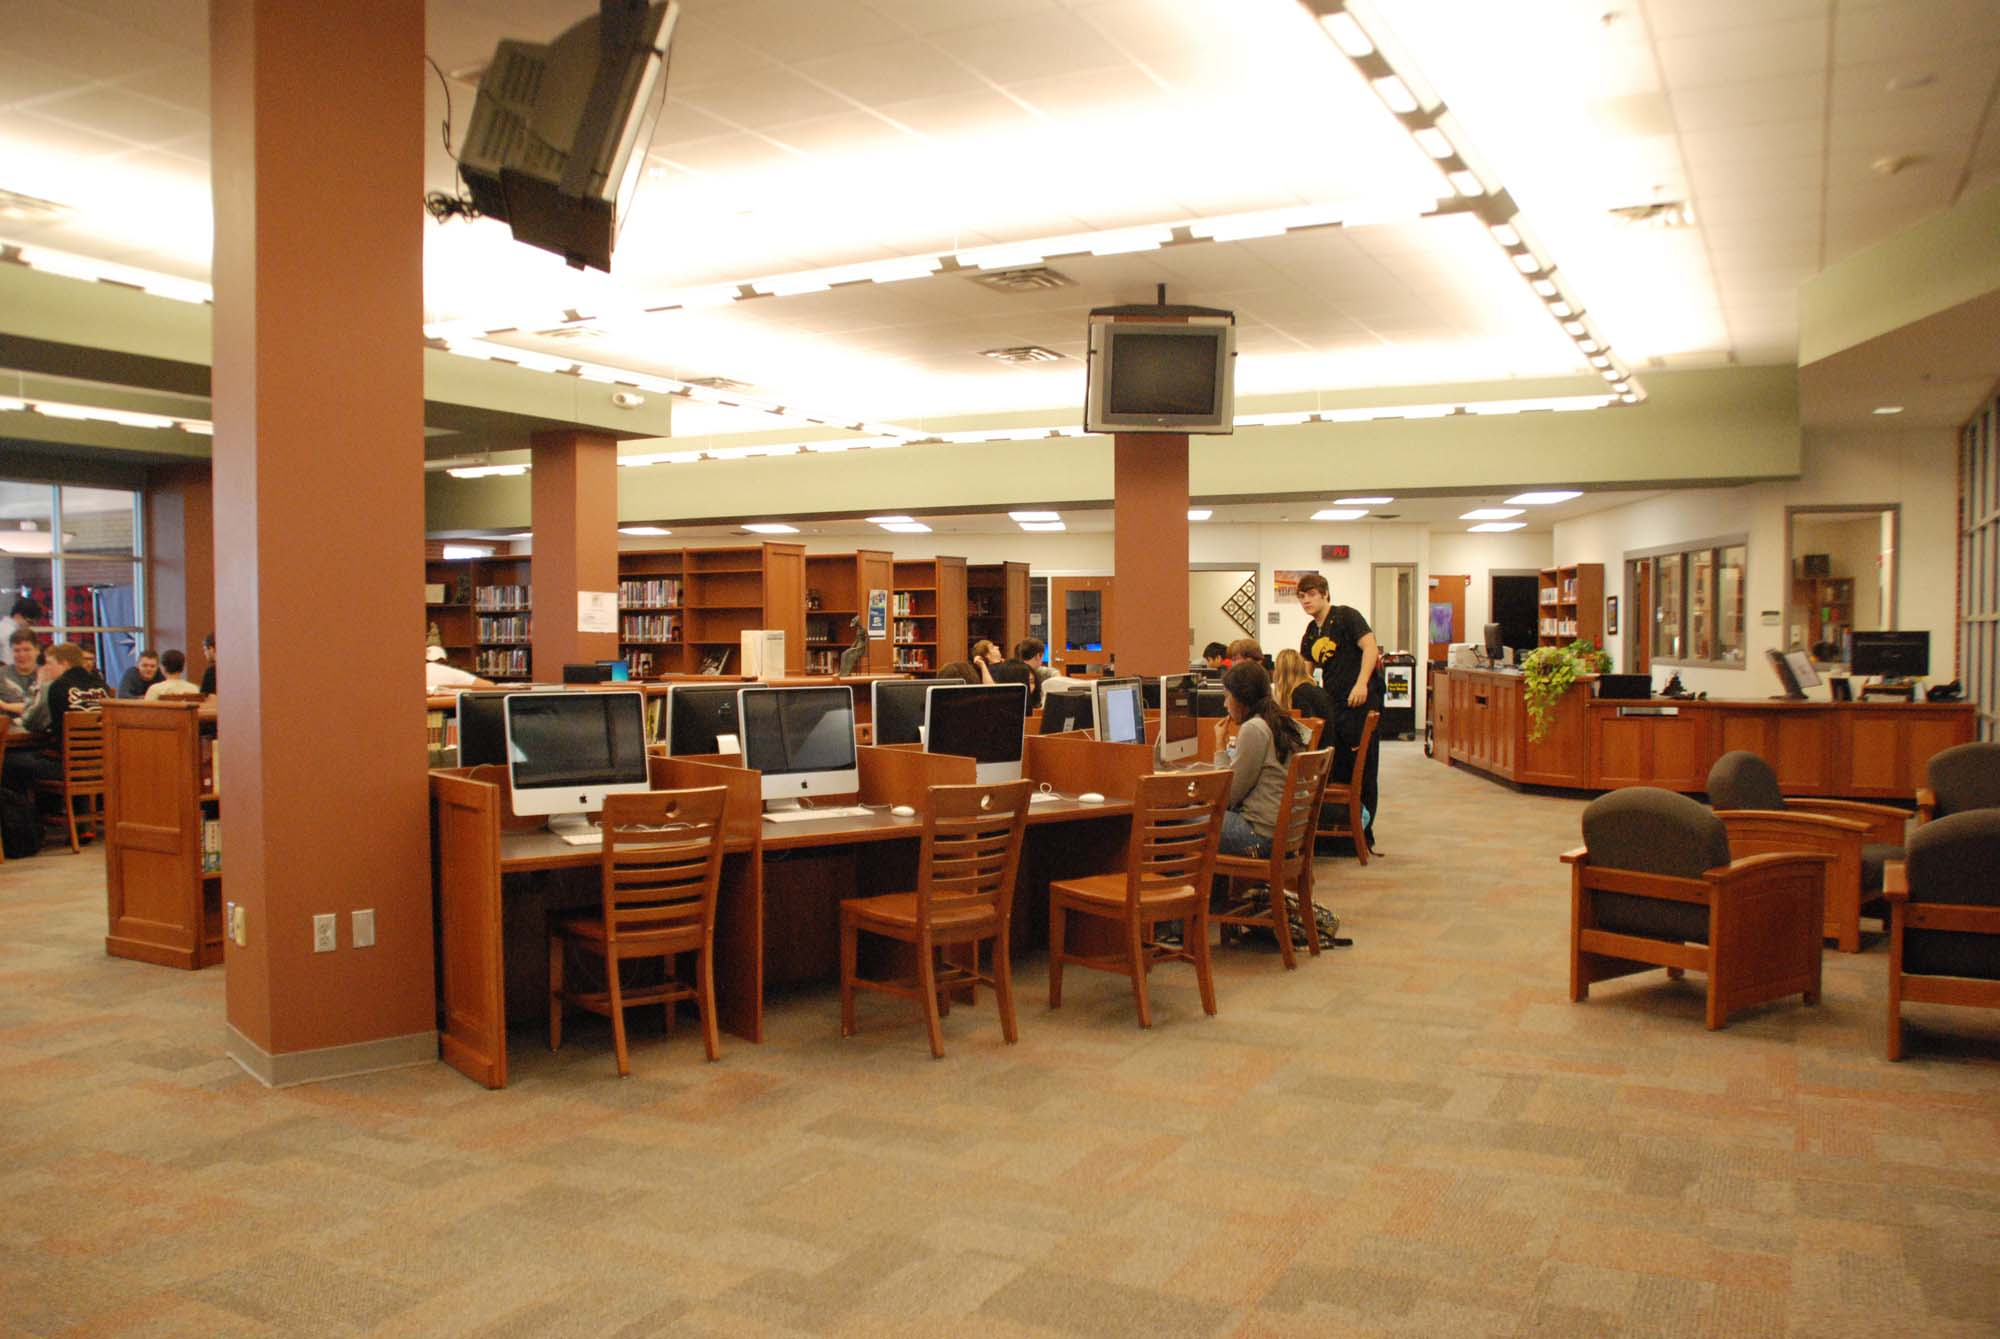 Many senior details are being taken care of this week in addition to rank being frozen. The computer lab in the library is open until Friday for seniors to come in and complete the senior survey that will be used to create a memory book to be given to seniors at the senior brunch on May 26.